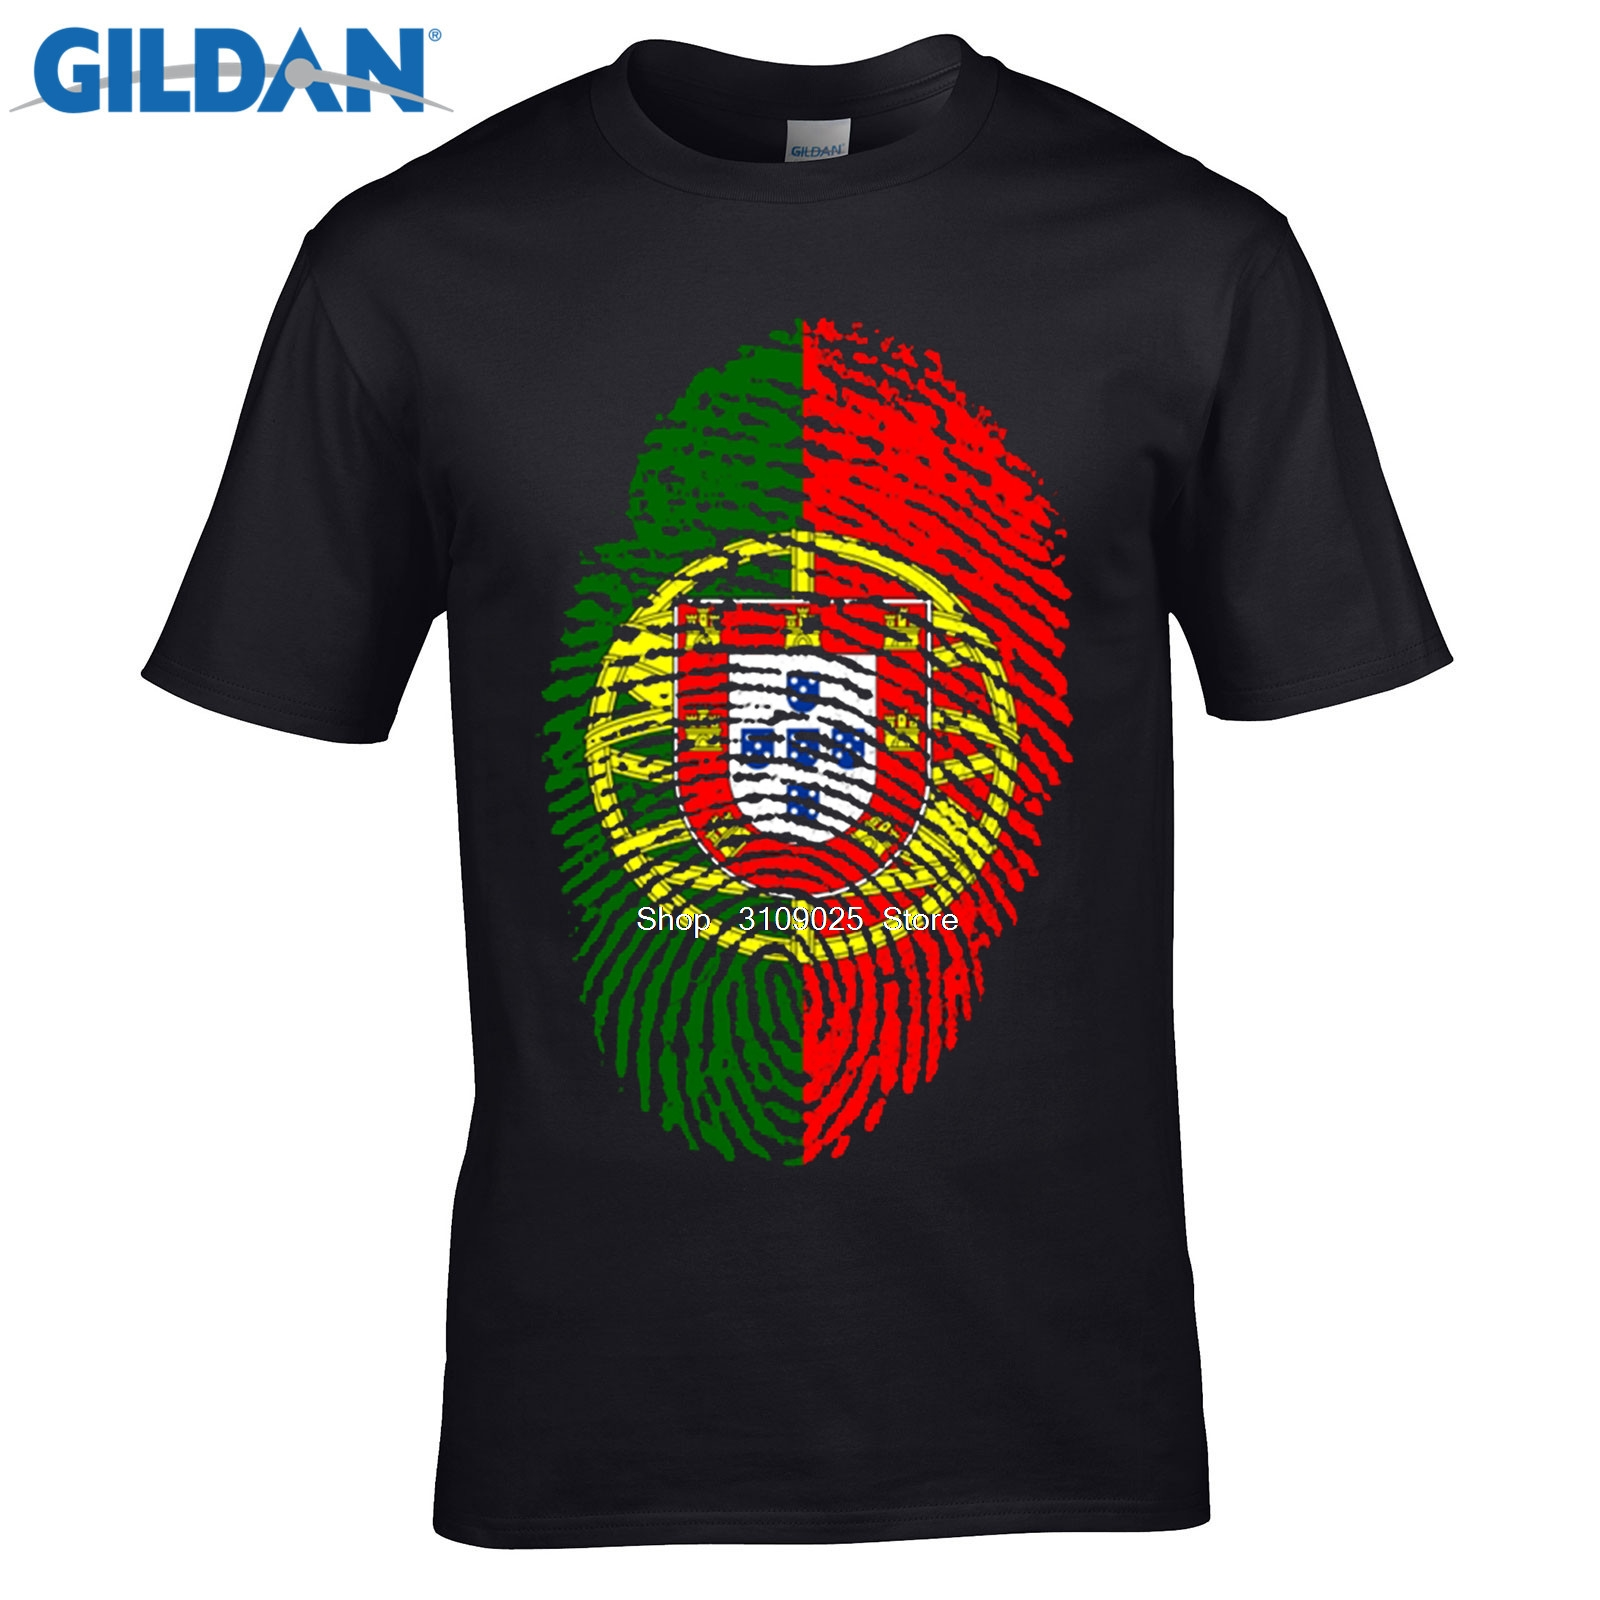 Gildan Diy Print T Shirt Screen Printing Portugal Flag Fingerprint T